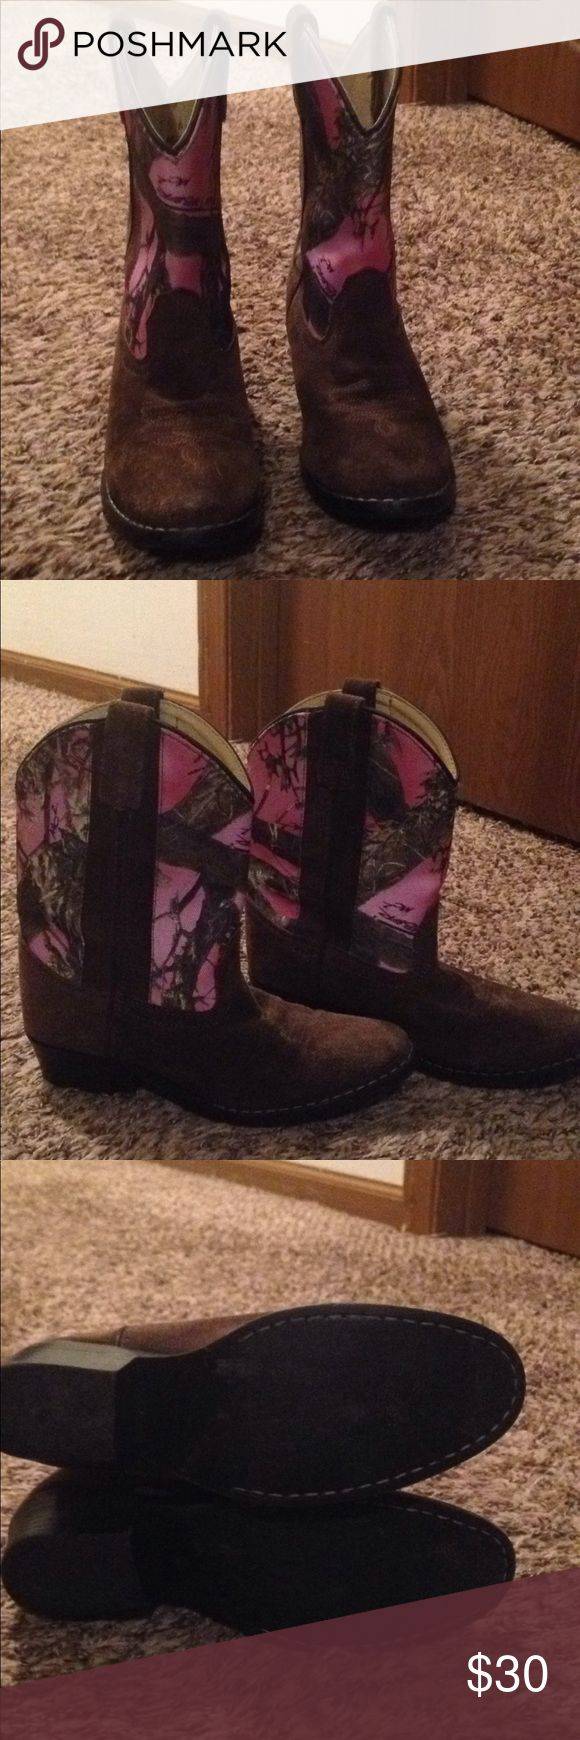 Girls pink camo cowgirl boots! In great condition! Girls size 2.5 leather foot, pink camo cowgirl boots by Masterson boot company masterson boot company Shoes Ankle Boots & Booties